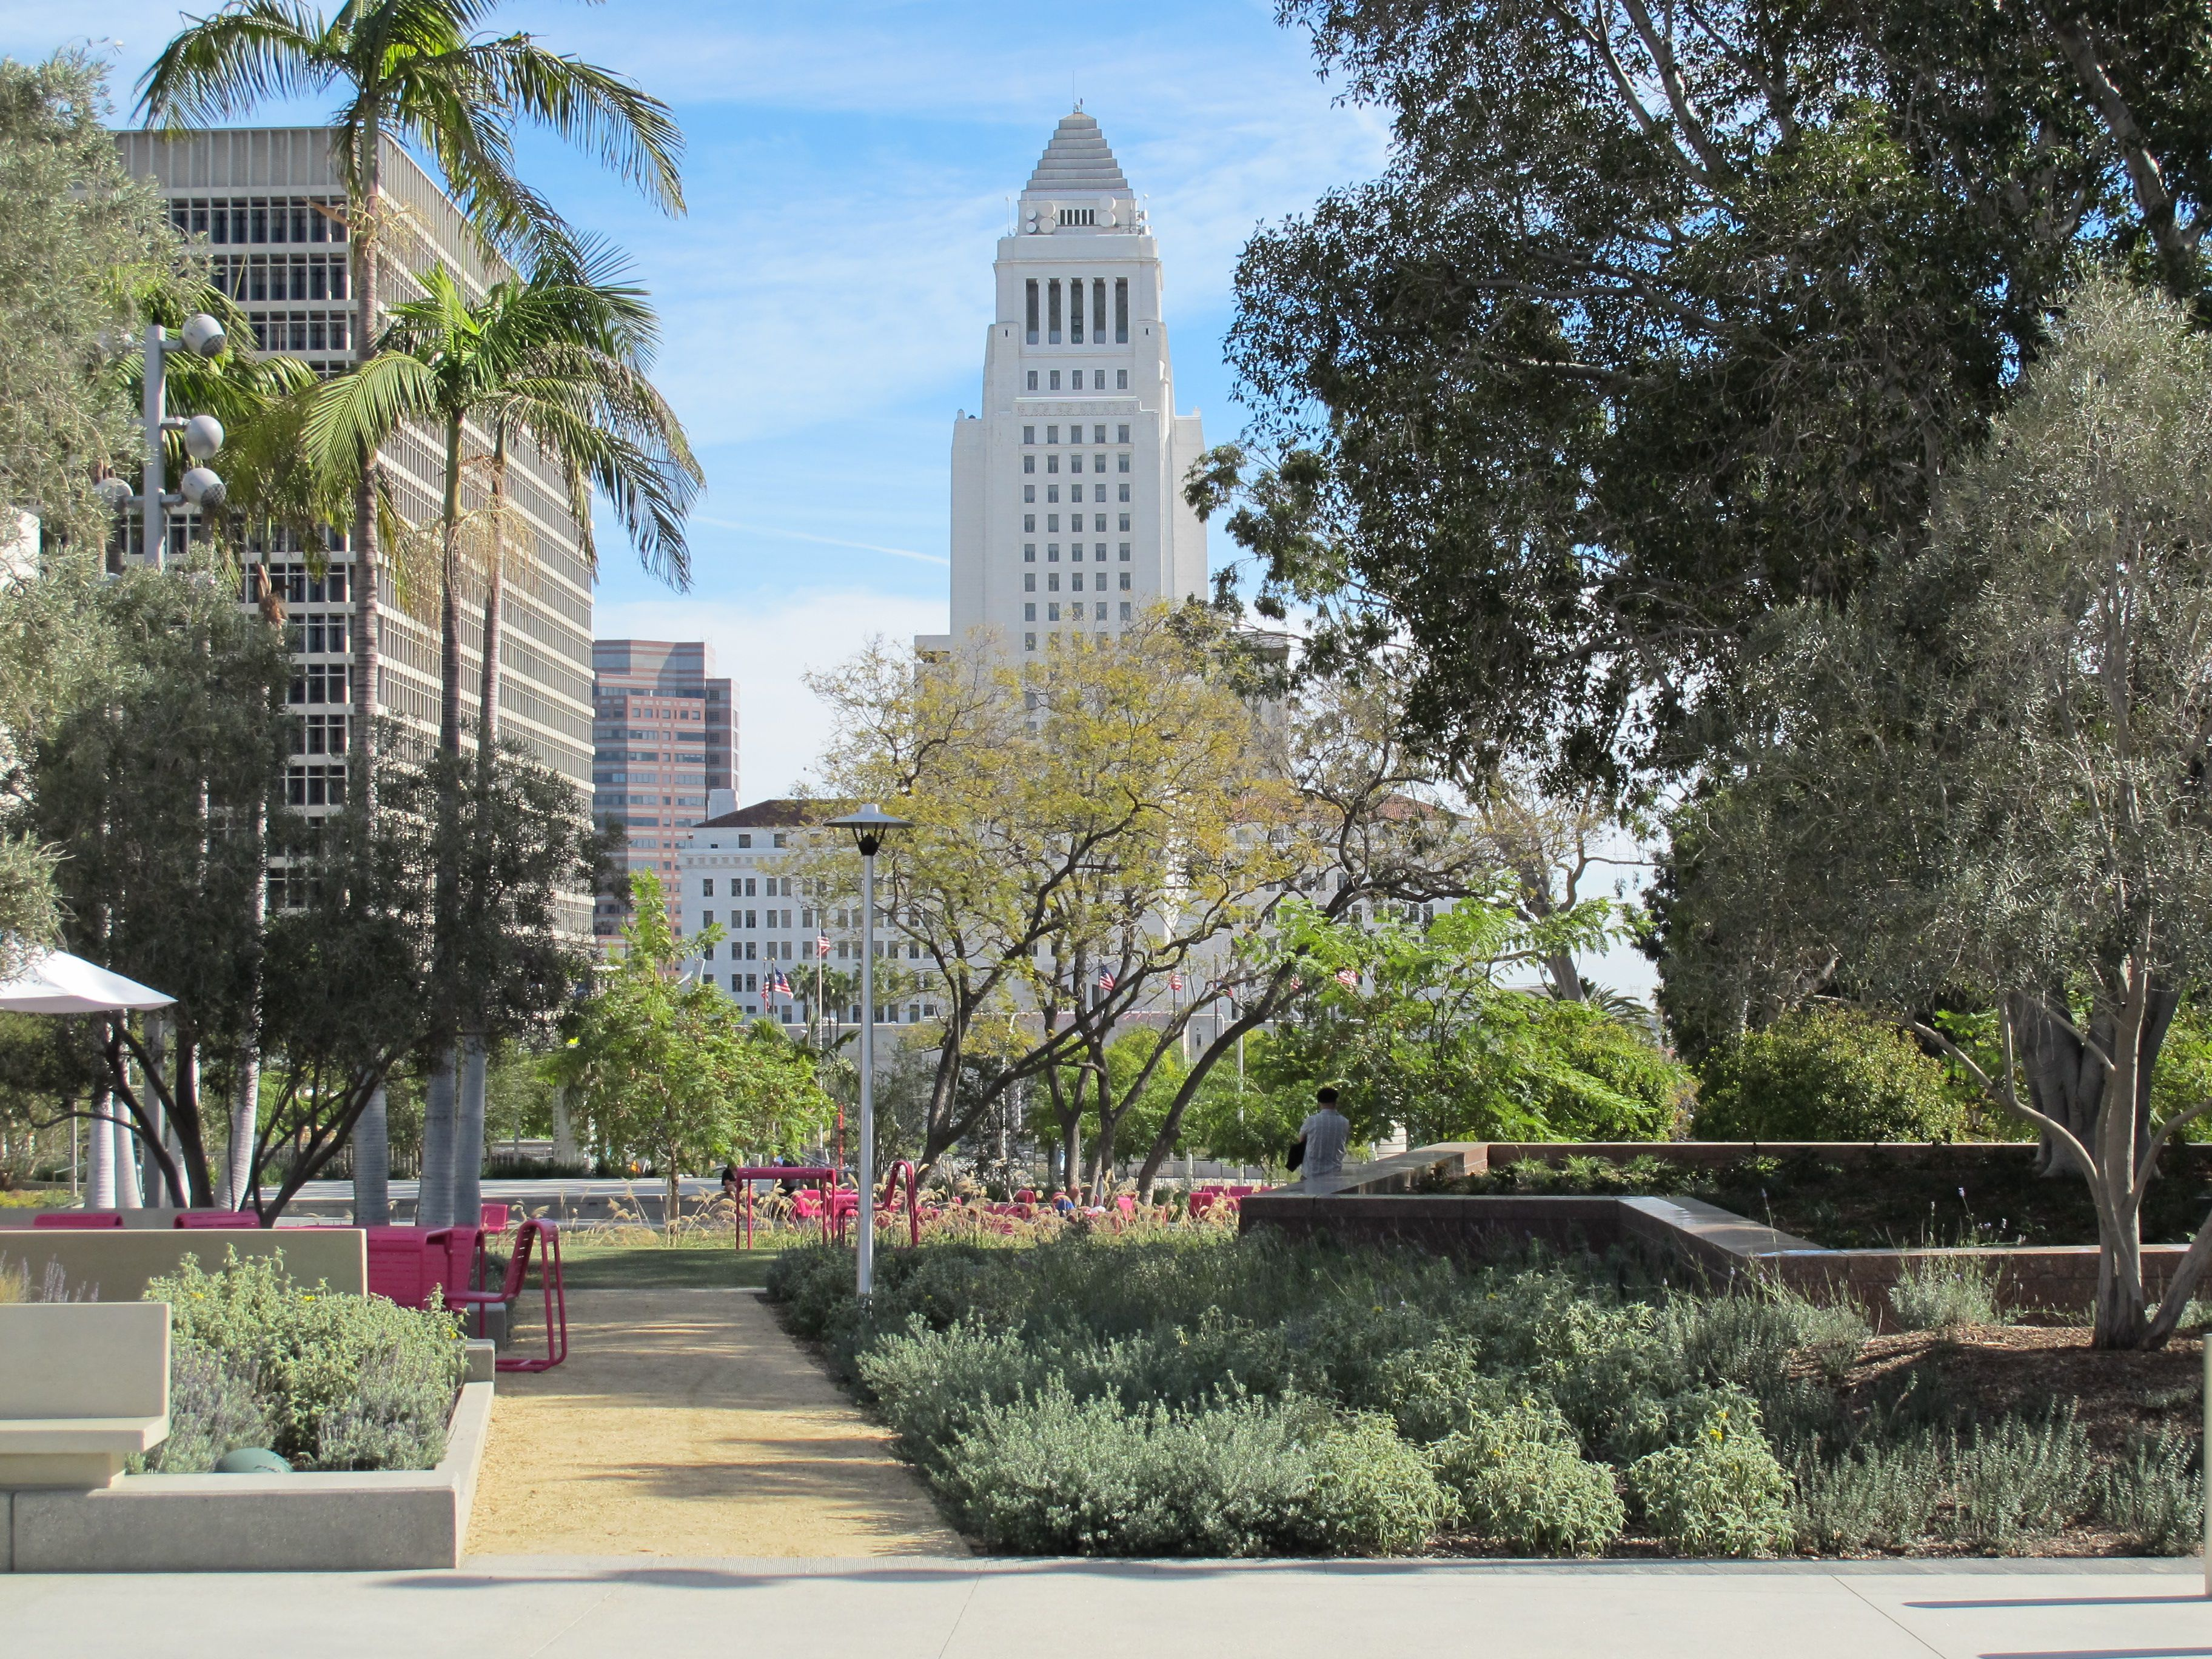 City Of Los Angeles Organizational Chart: Grand Park Los Angeles view toward City Hall.jpg - Wikipedia,Chart